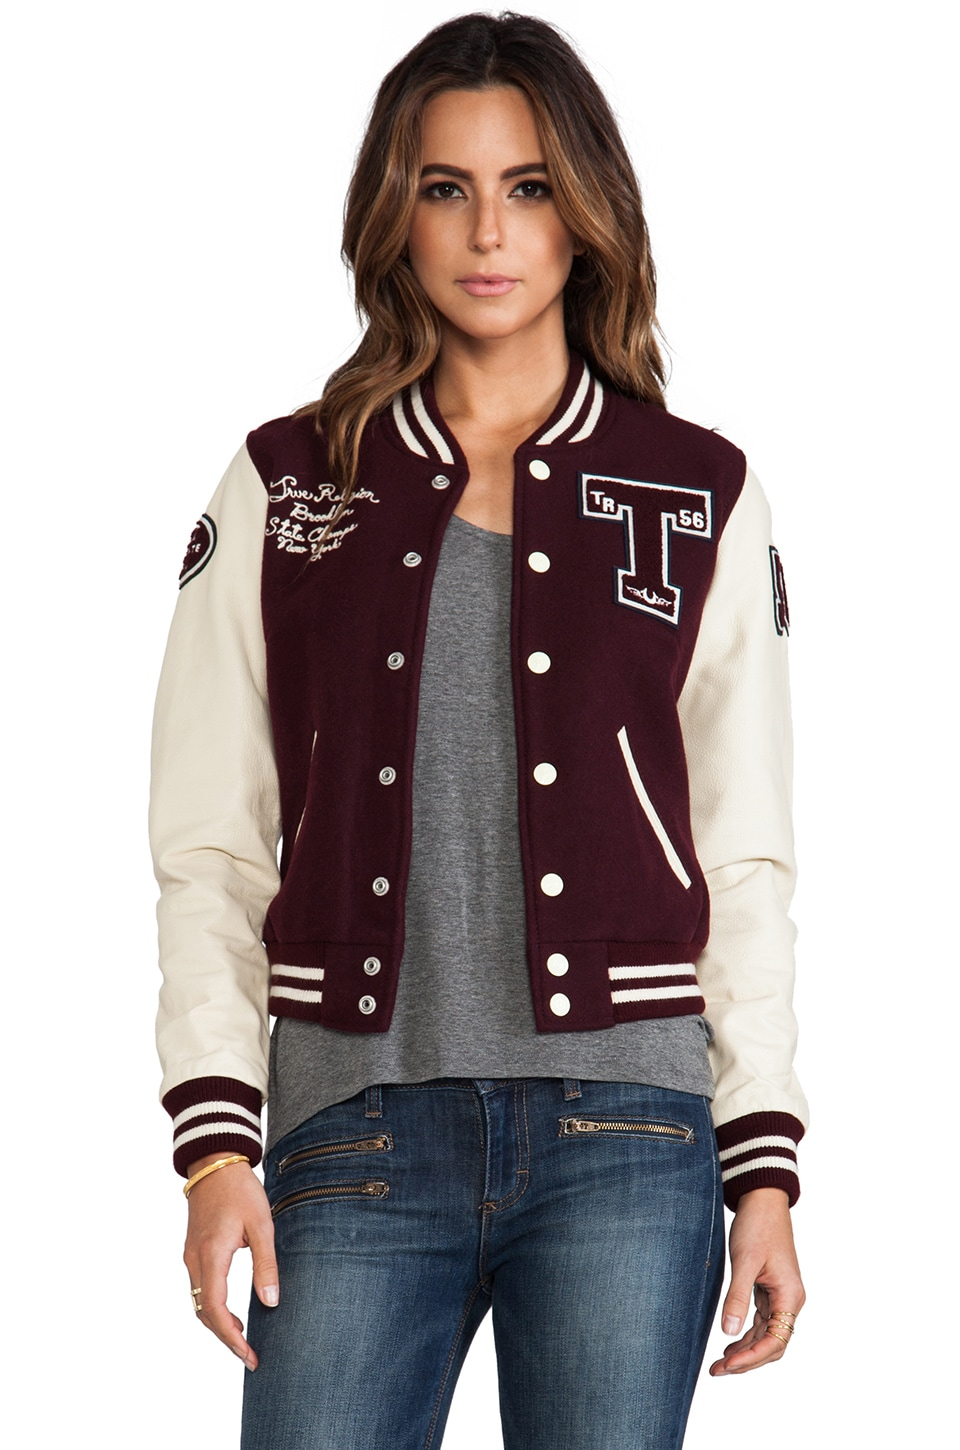 True Religion Richie Varsity Jacket in Plum